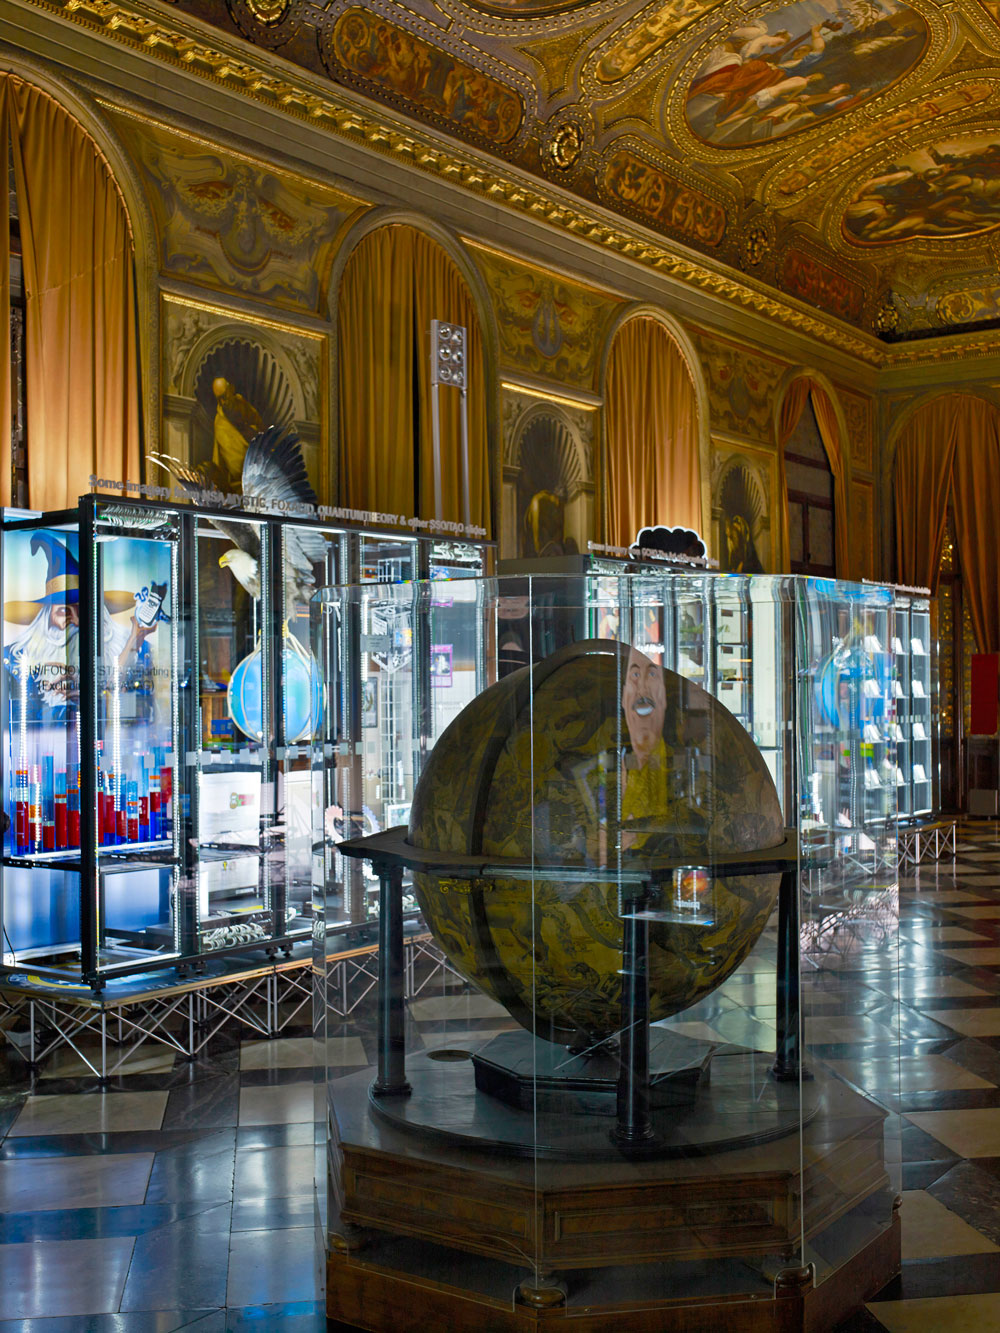 Vincenzo Coronelli globes and Simon Denny Secret Power server racks in the Marciana Library